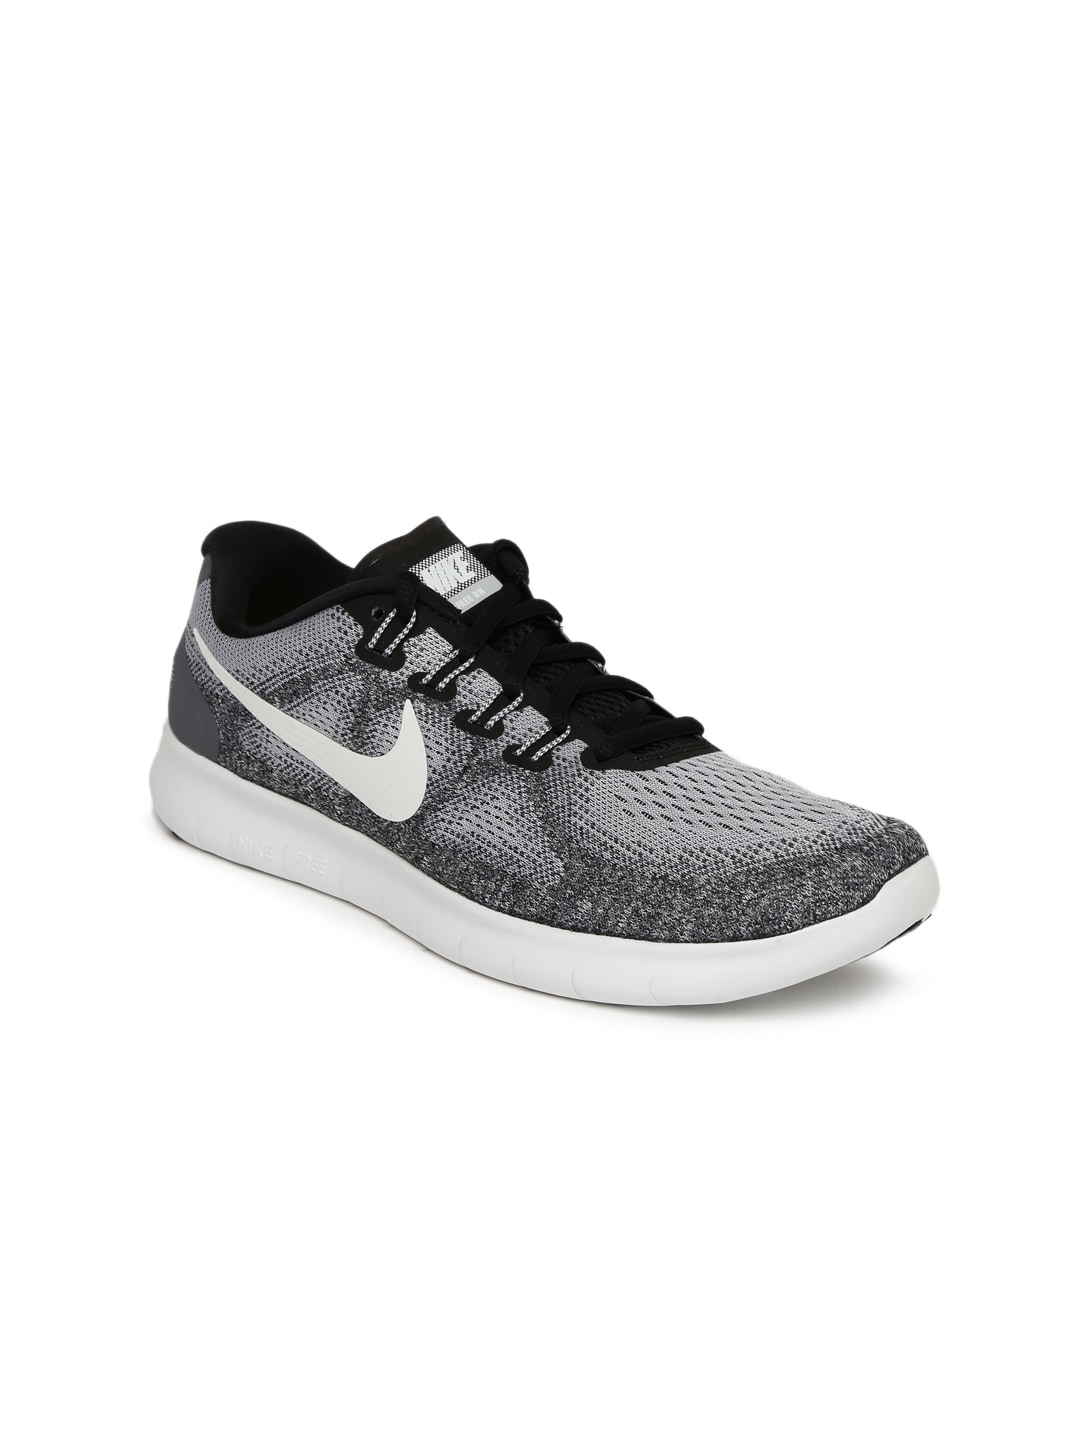 dadbcb5fa1e8 Nike Sport Shoe - Buy Nike Sport Shoes At Best Price Online